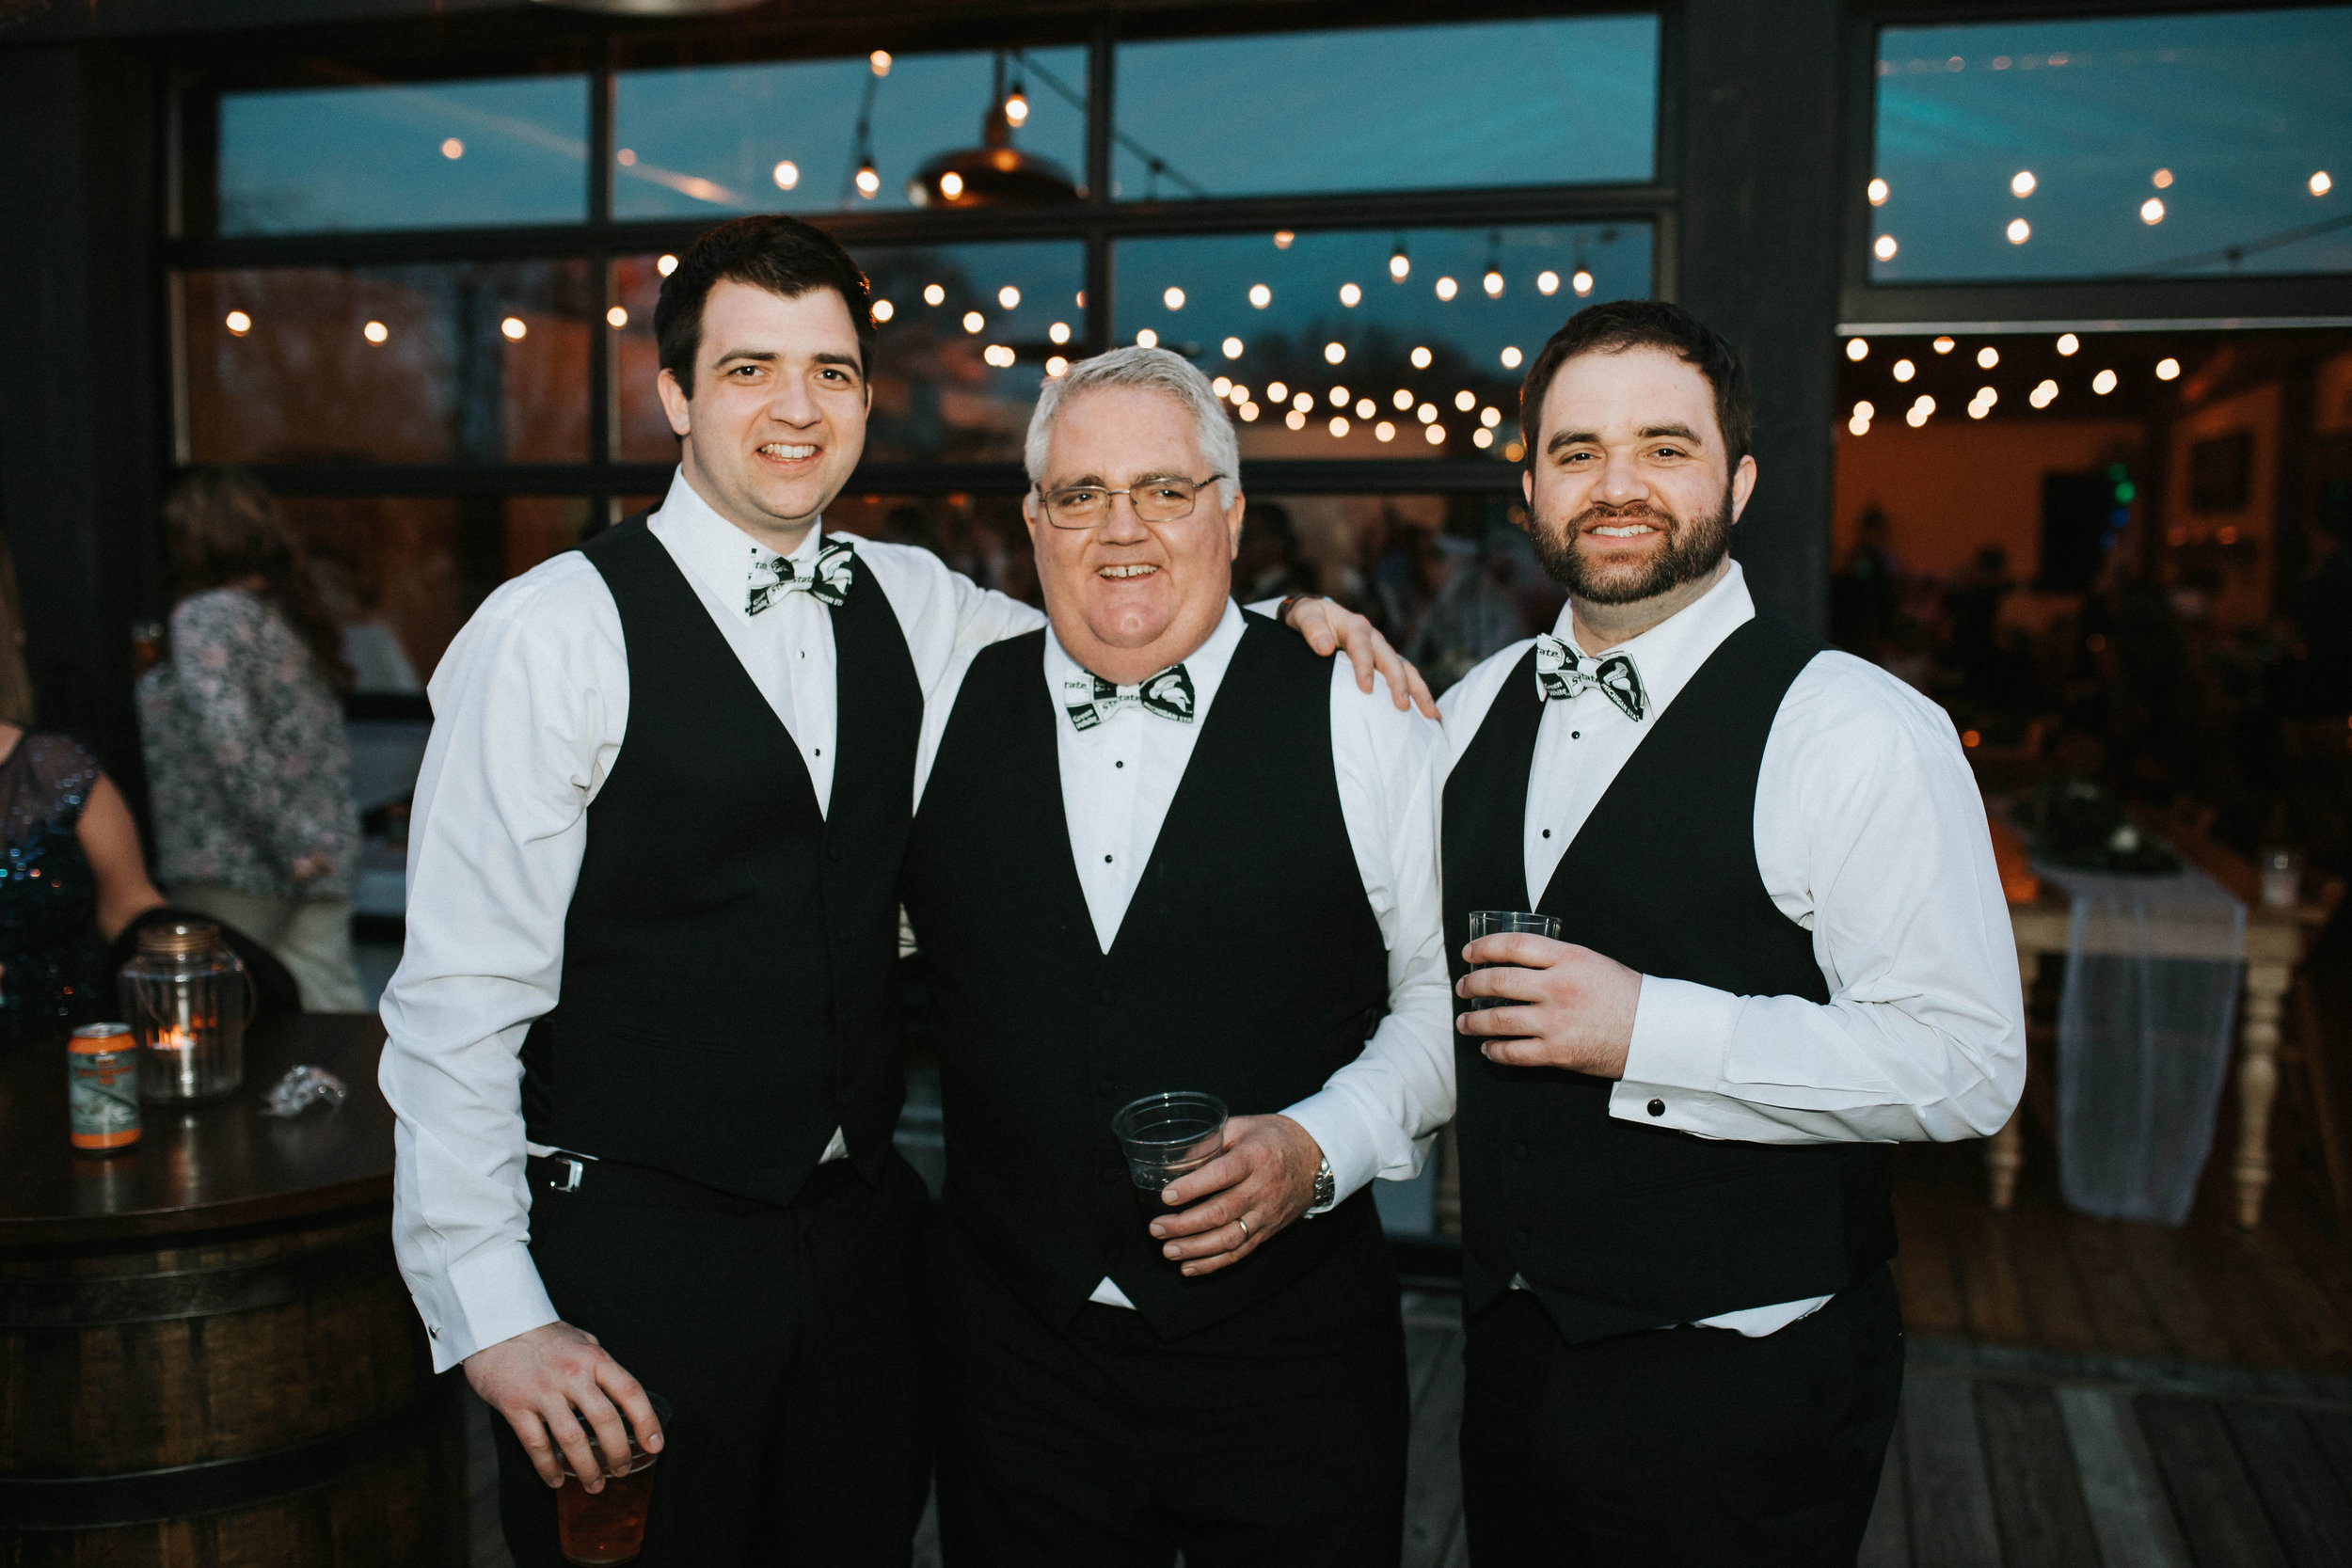 The groom, his dad and brother were surprised with MSU bowties to wear during the game.